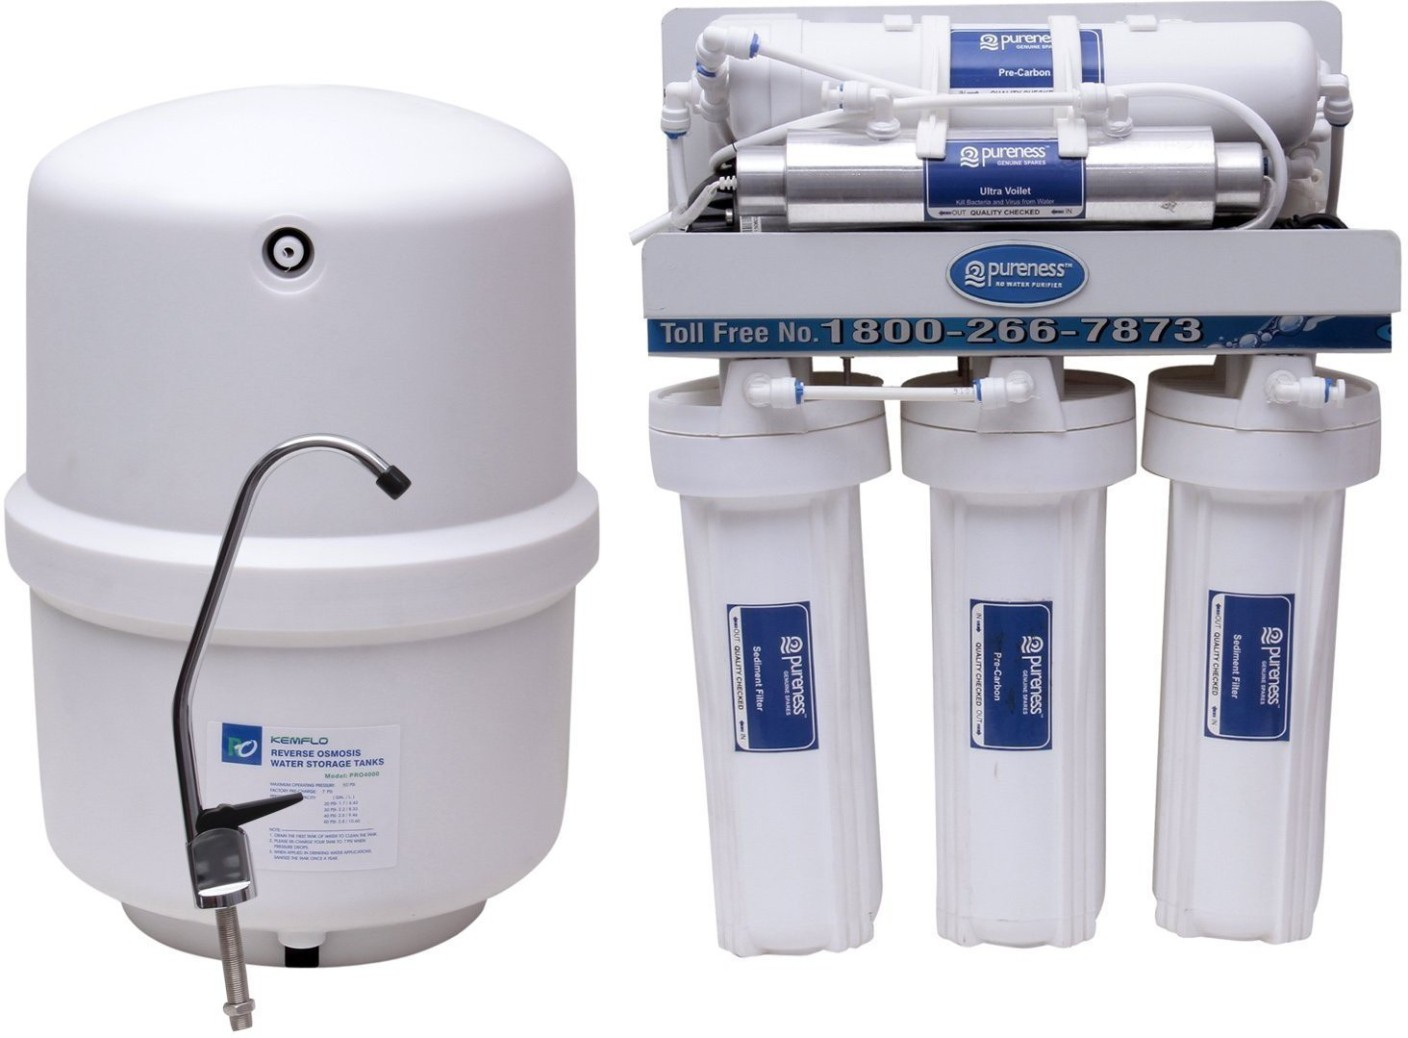 Pureness Under Sink Ro Water Purifier In Food Grade Body